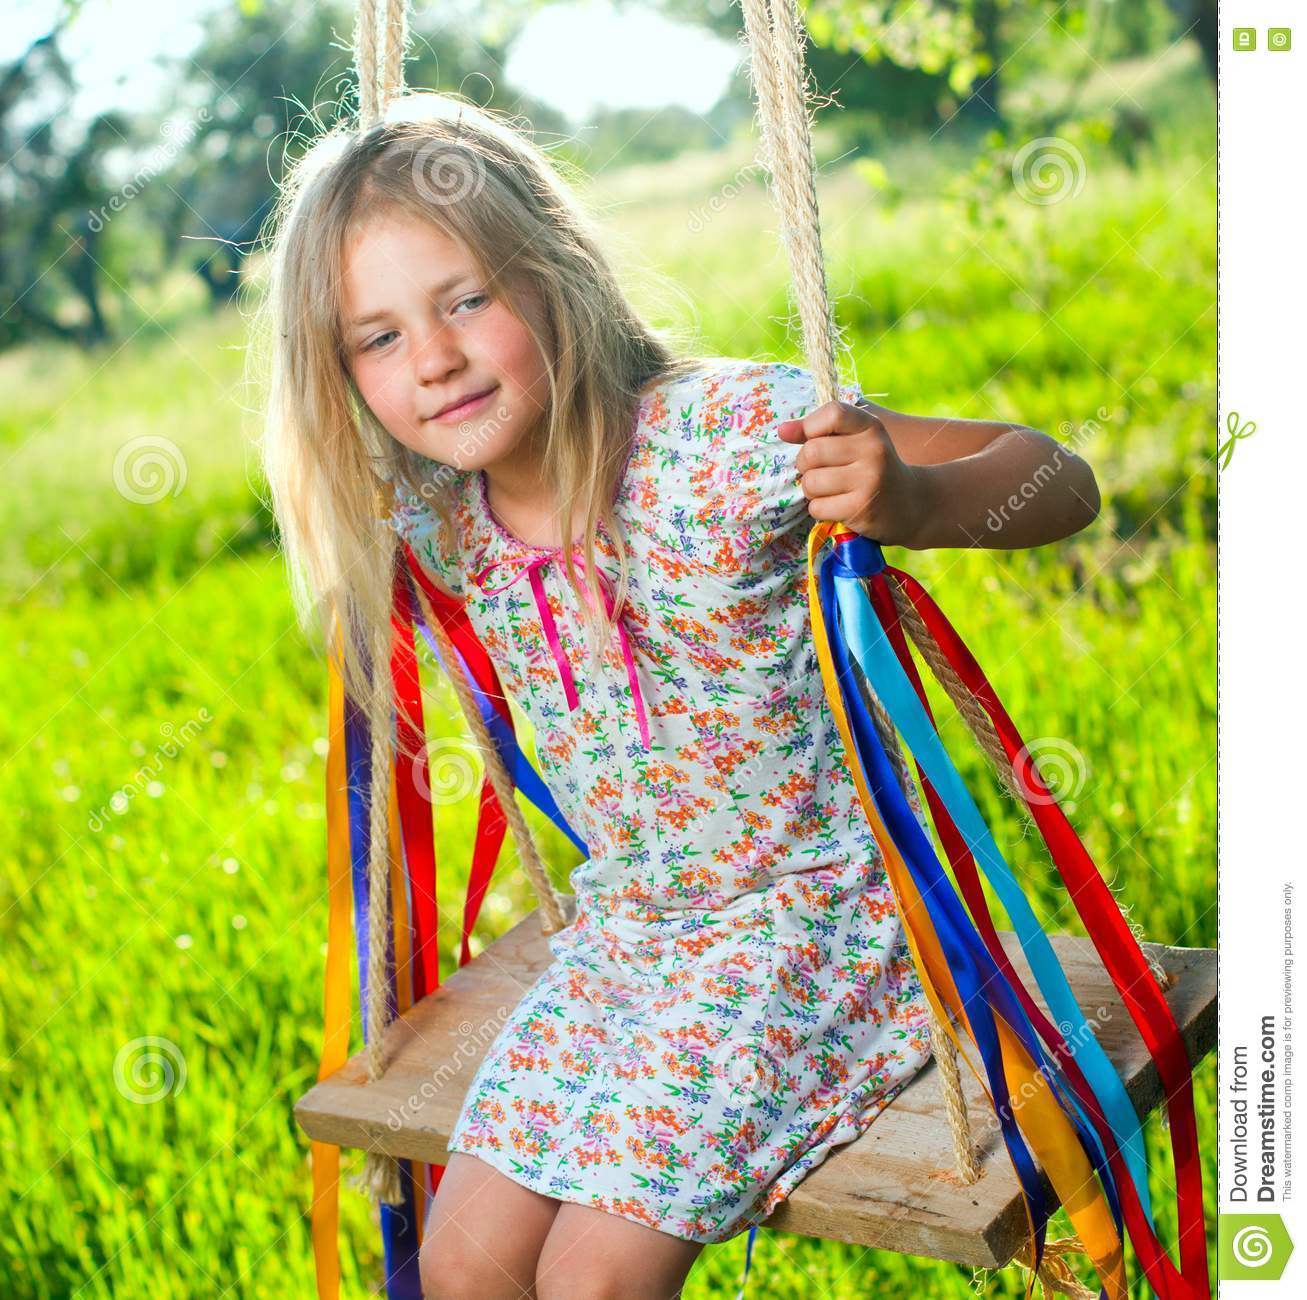 Young girl on swing.